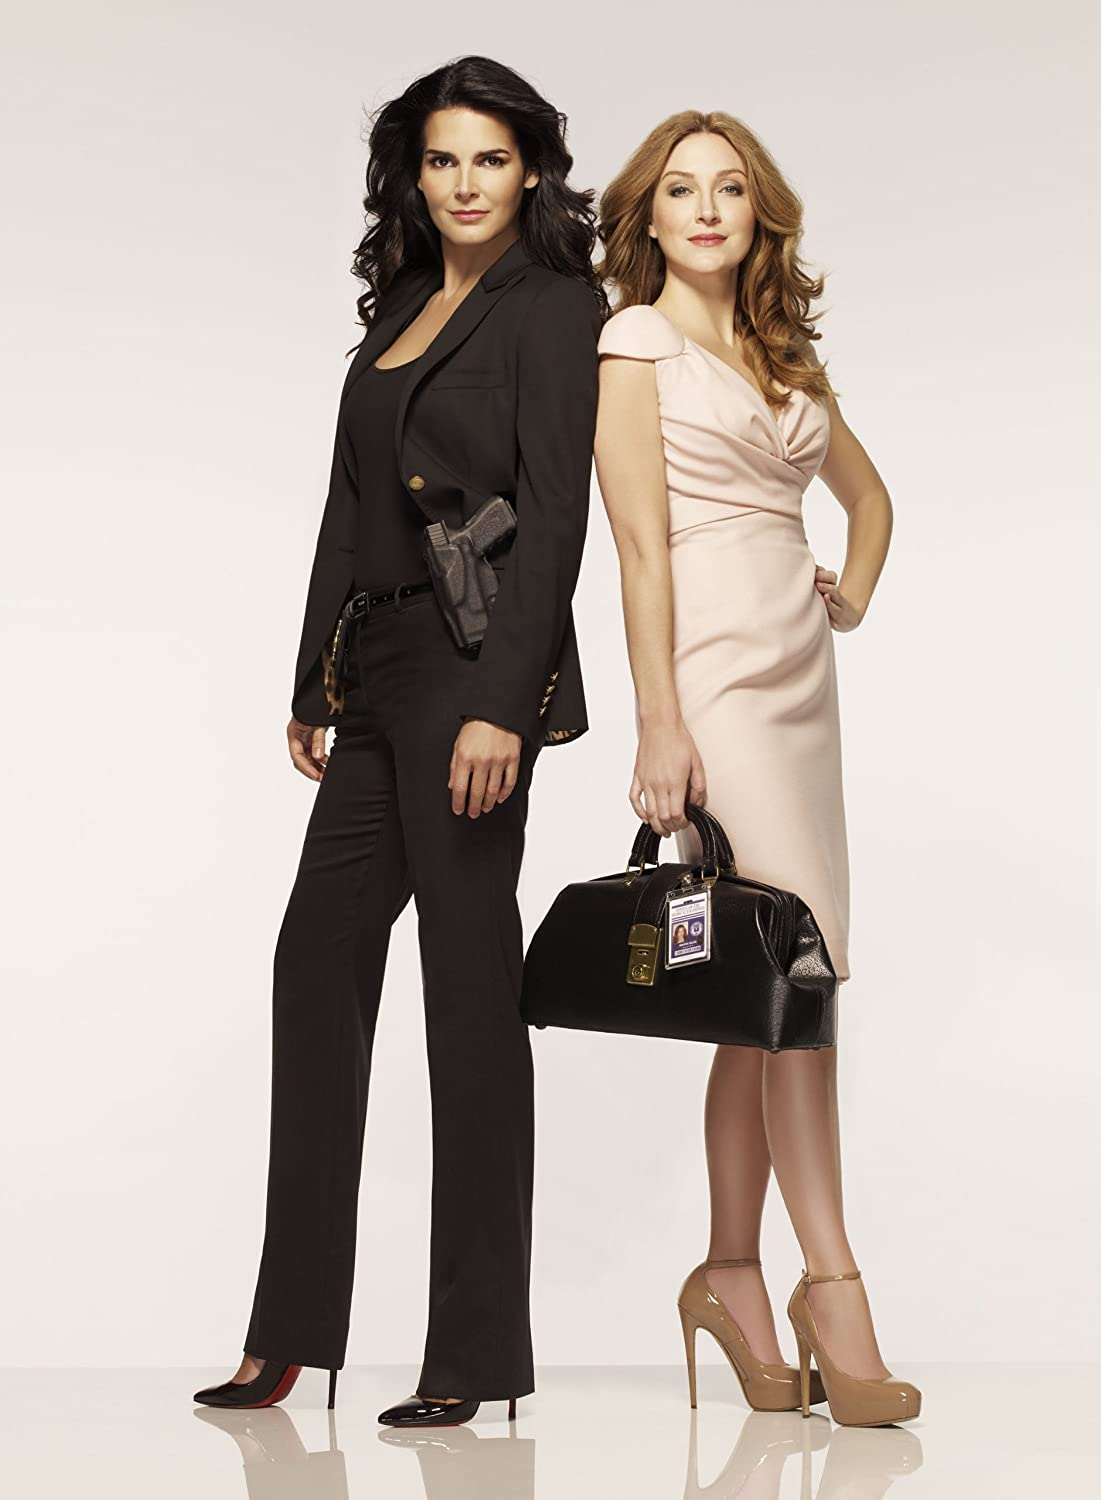 Angie Harmon and Sasha Alexander promo shot 8 inch by 10 inch PHOTOGRAPH TL